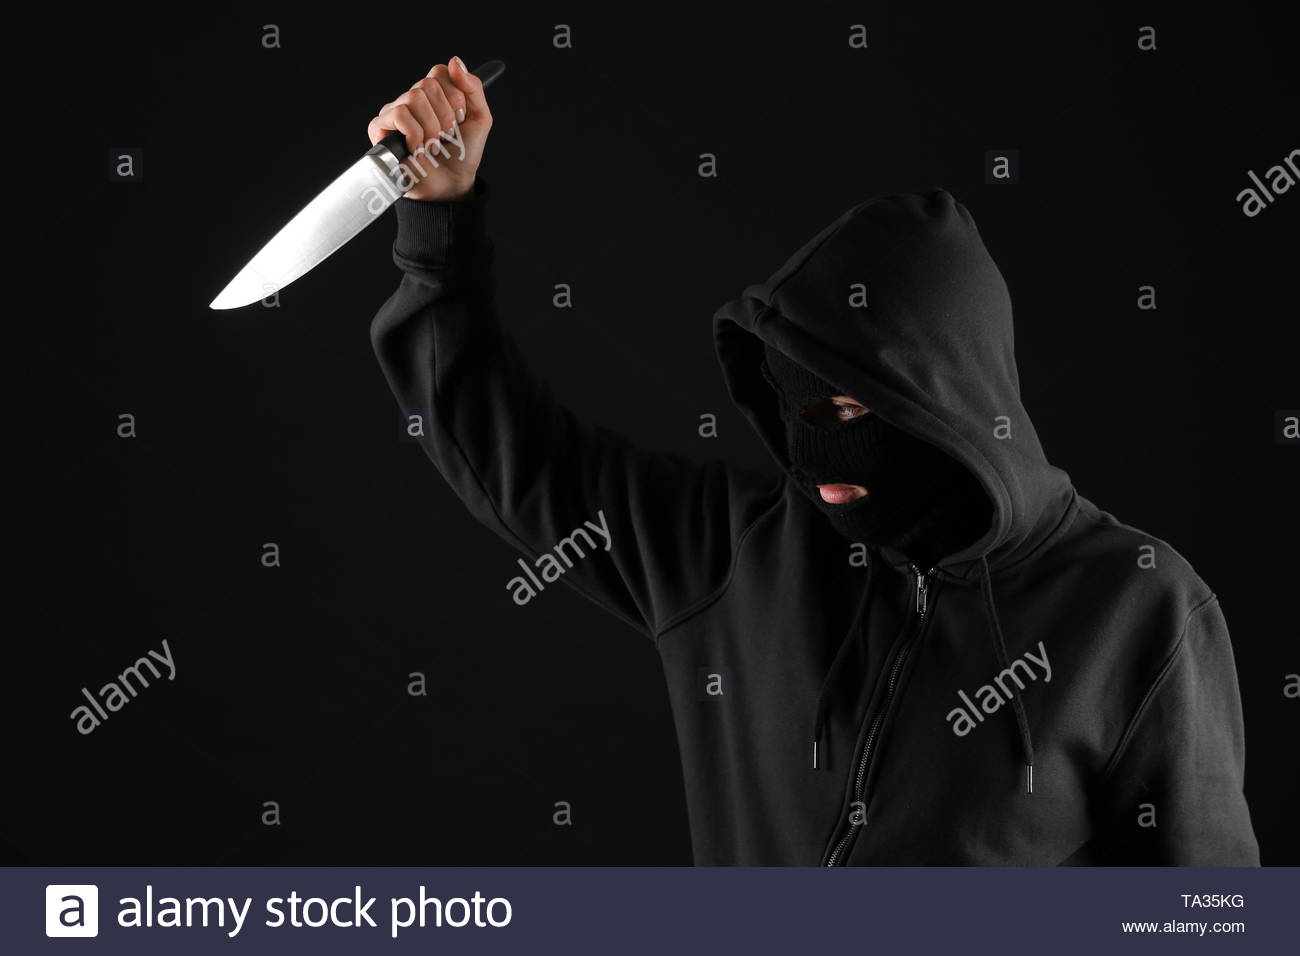 Bandit with knife on dark background Stock Photo 247162036   Alamy 1300x956